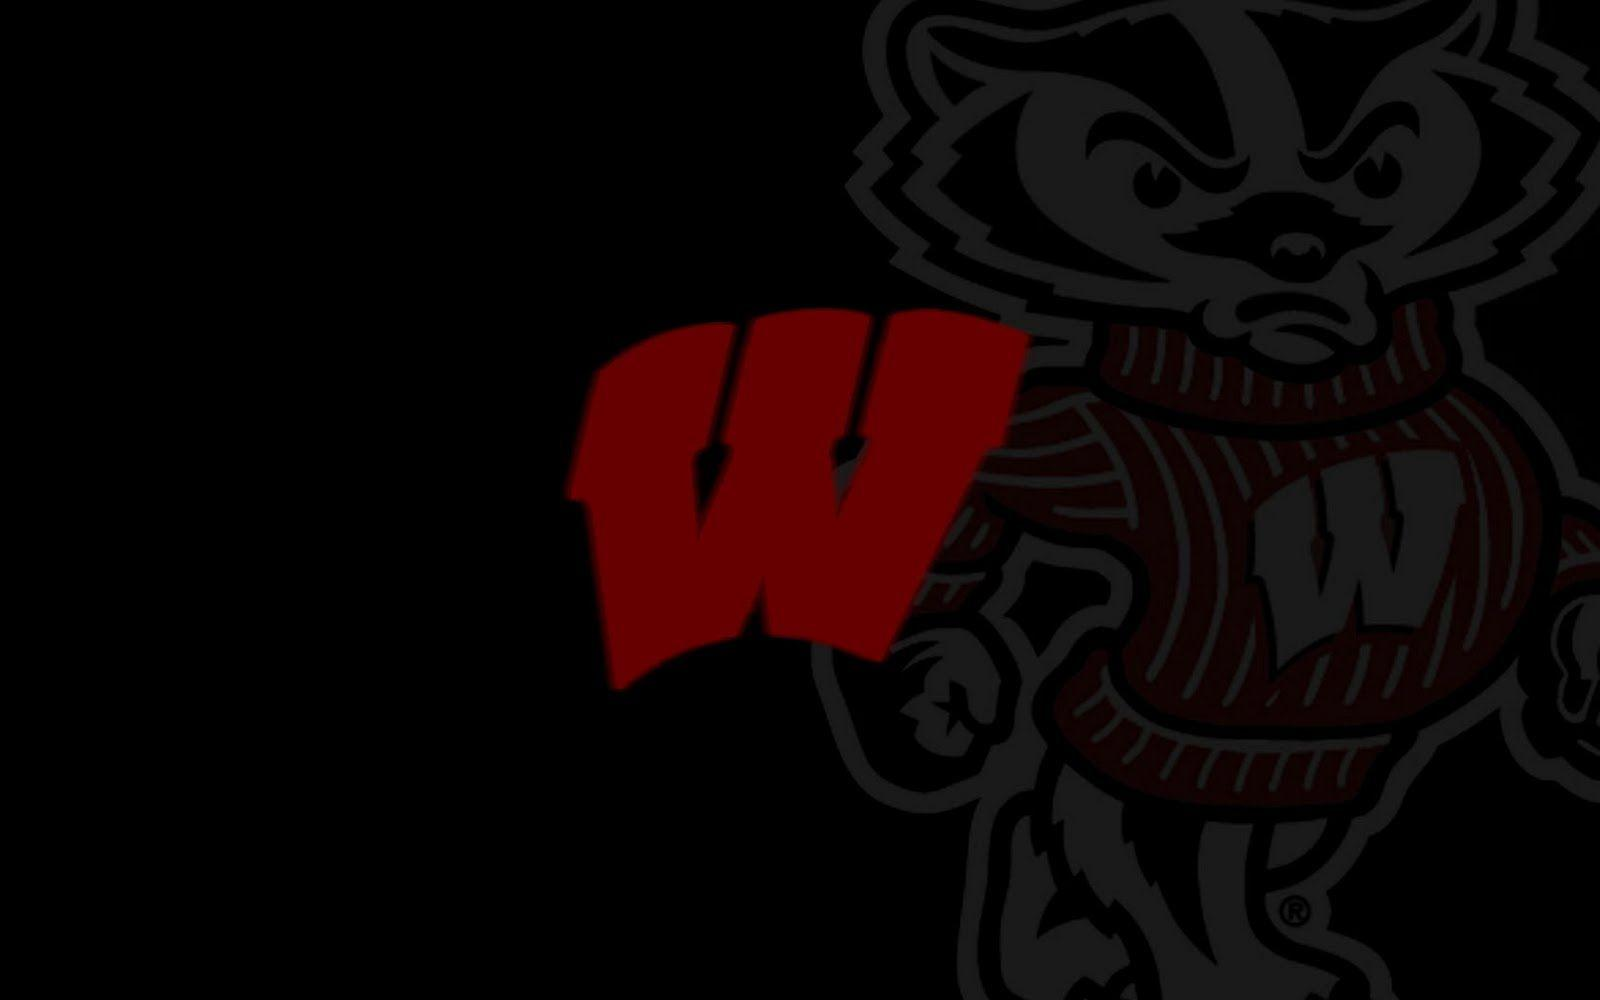 Bucky Badger Wallpapers